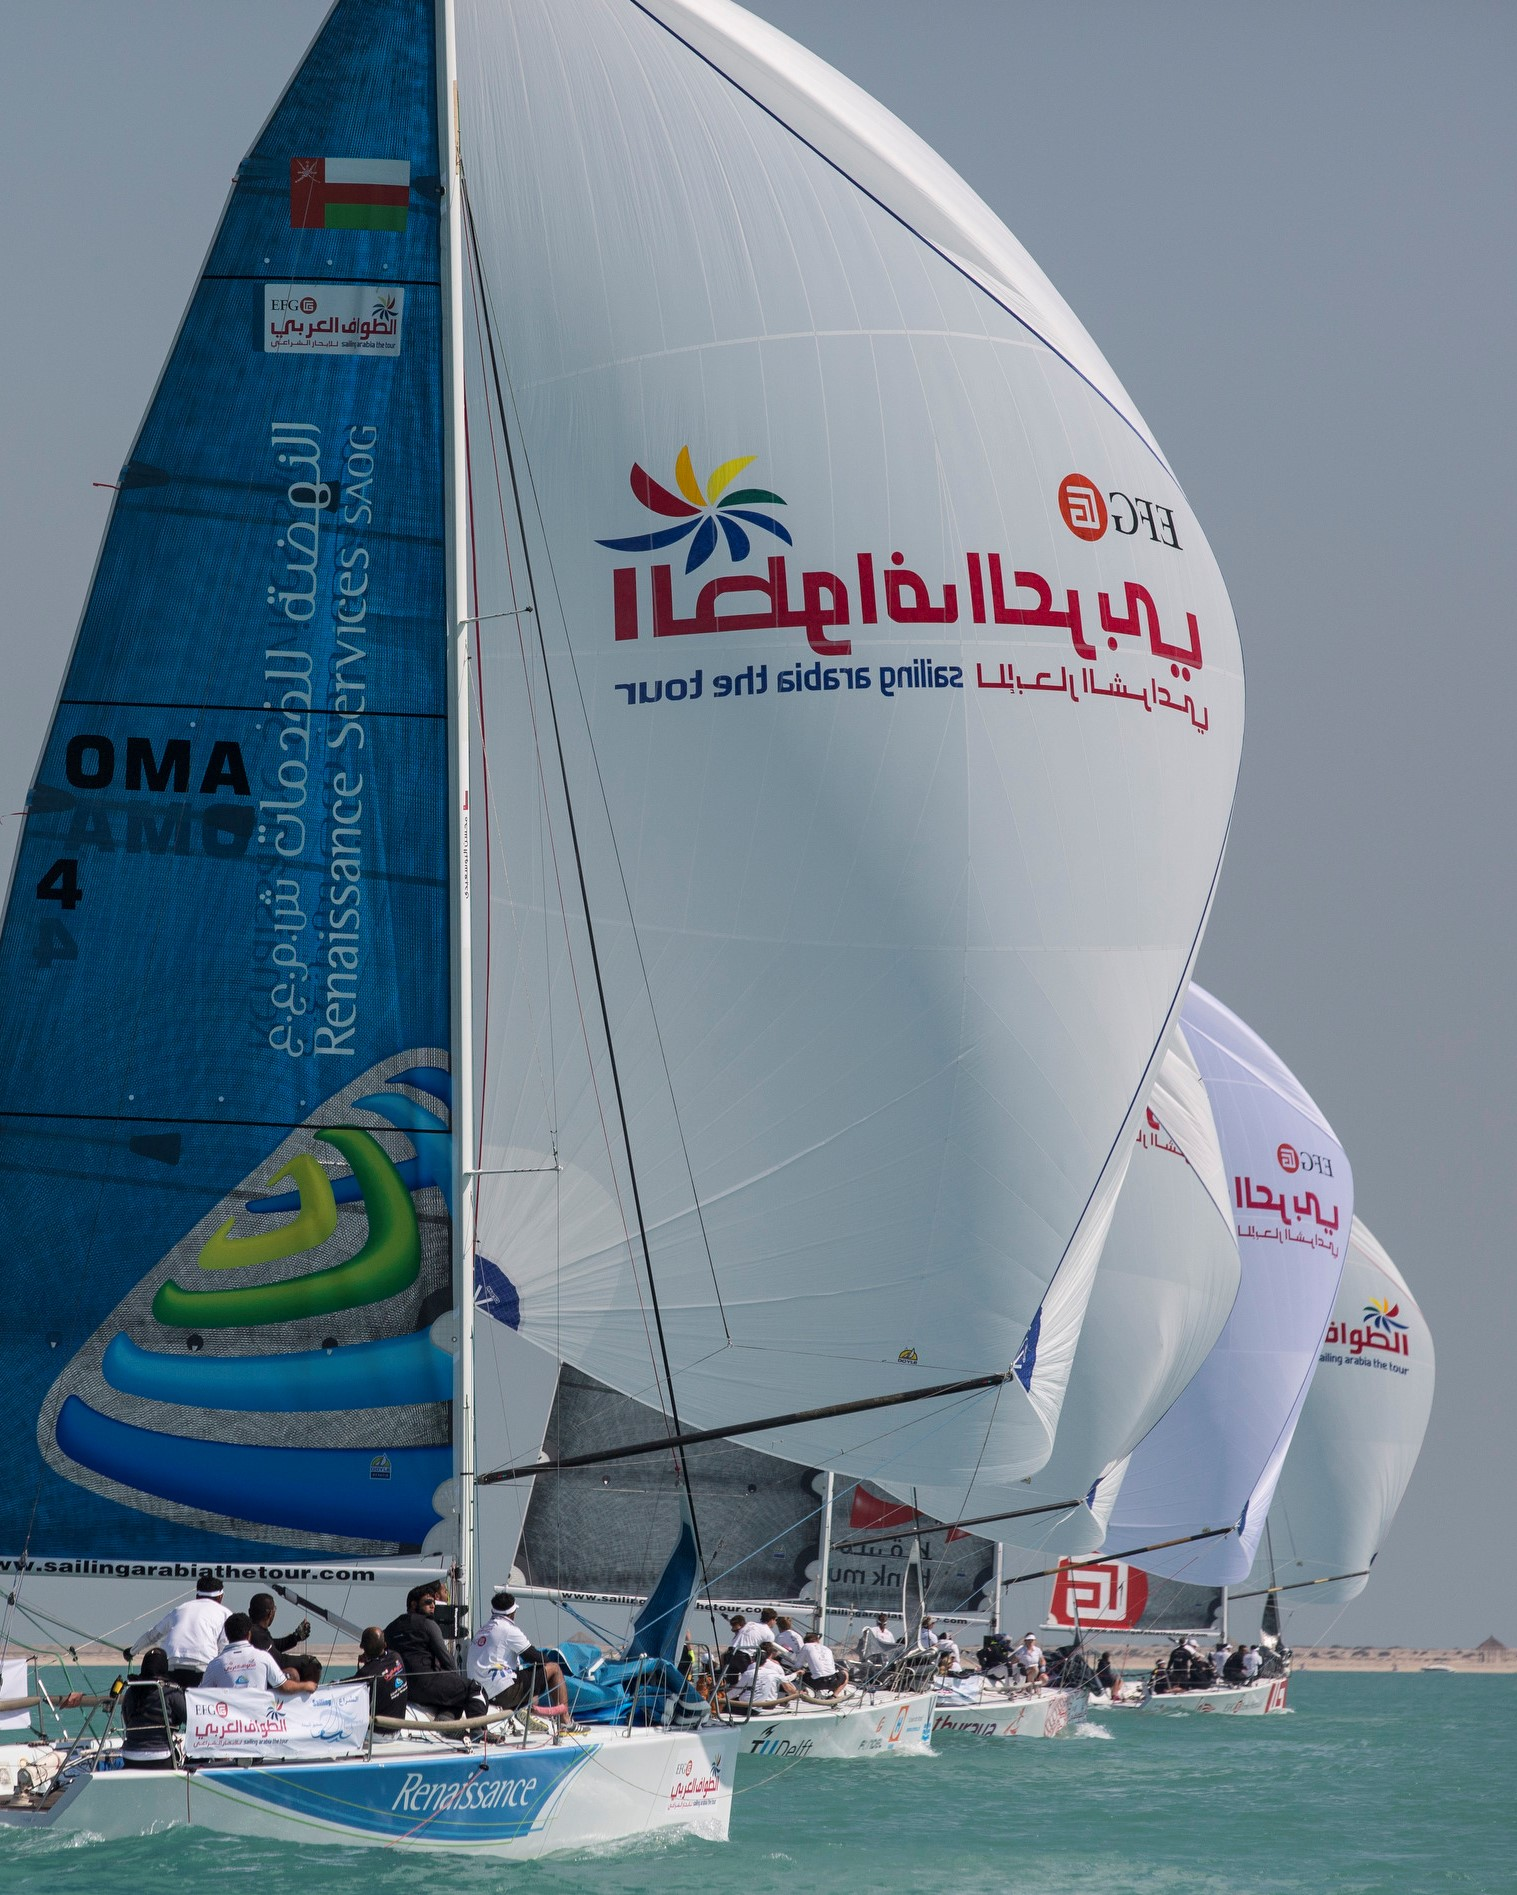 EFG BANK - Sailing Arabia The Tour 2014. Qatar. Doha  Pictures of the In-Port race day. Team Renaissance (OMA) Credit - Lloyd Images